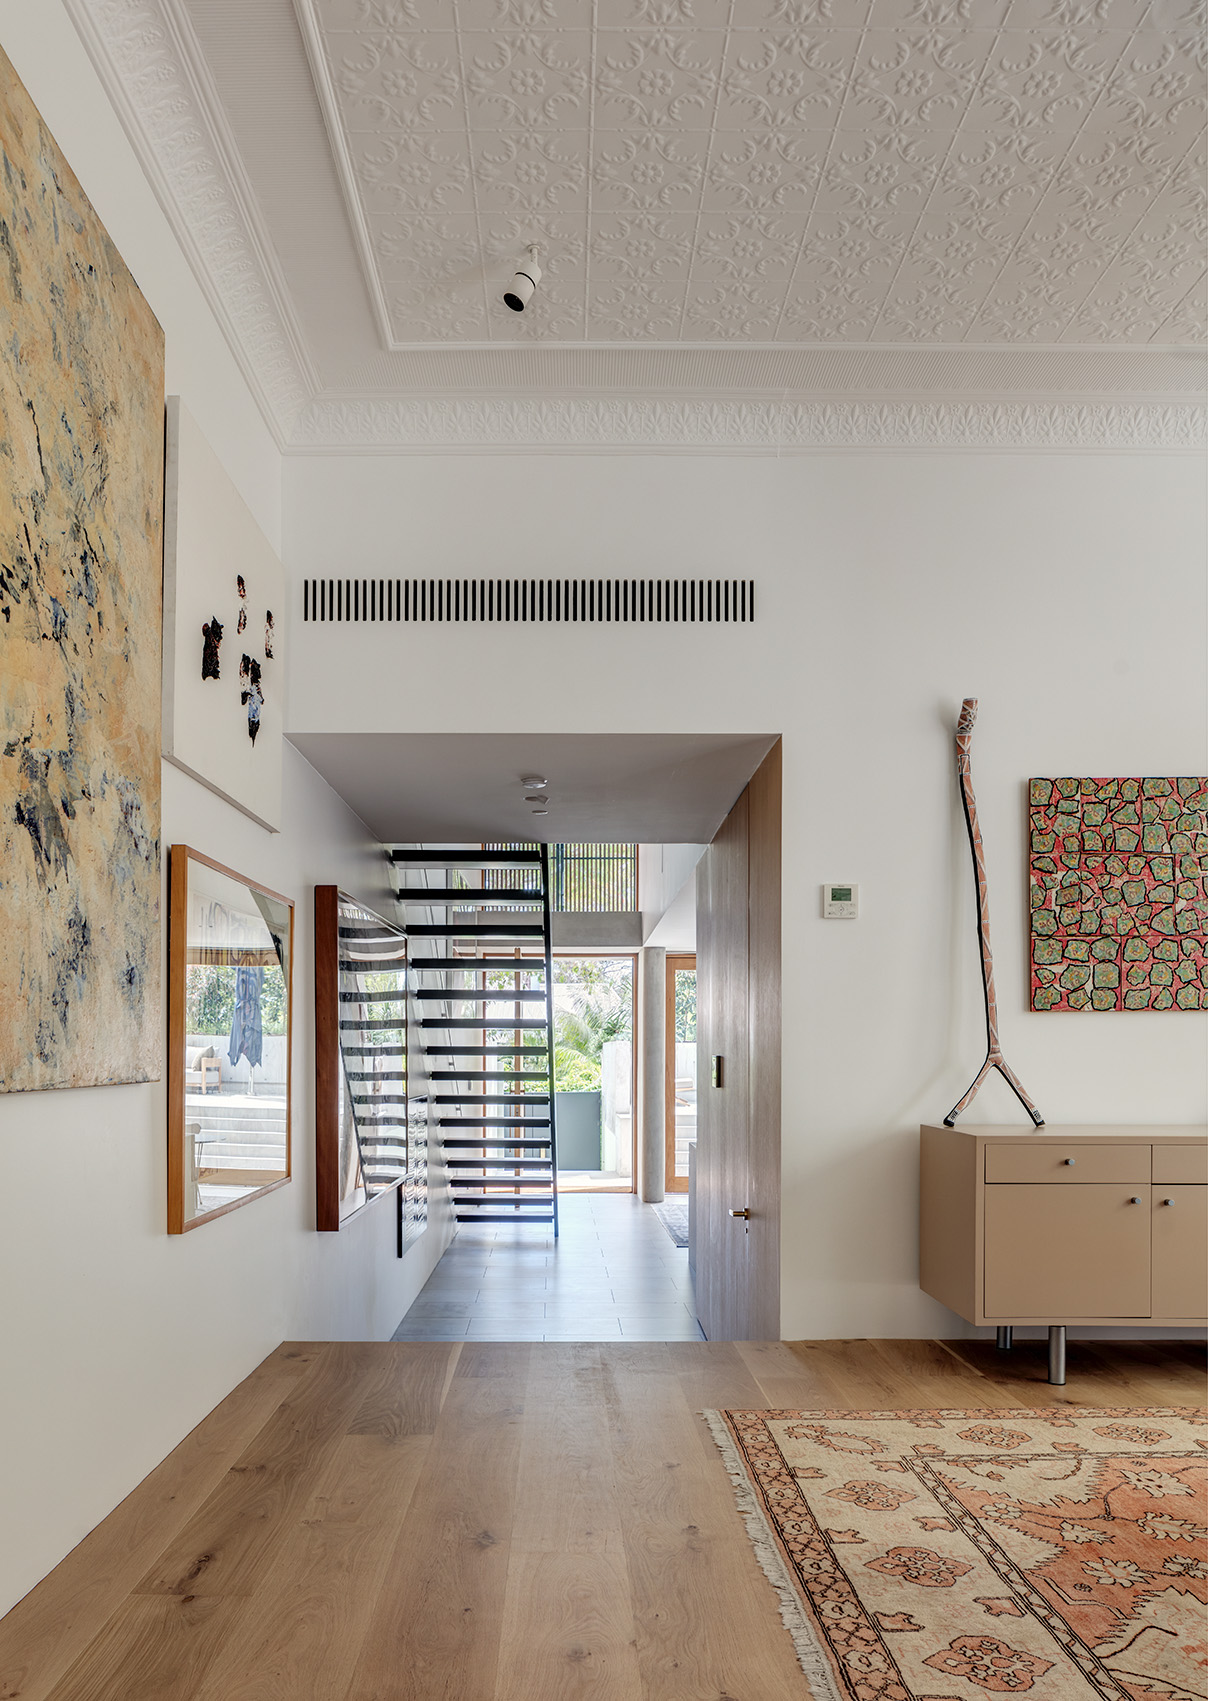 He Goes On To Reference The Colonnade Or Porch As A Traditional And Inspiring Space